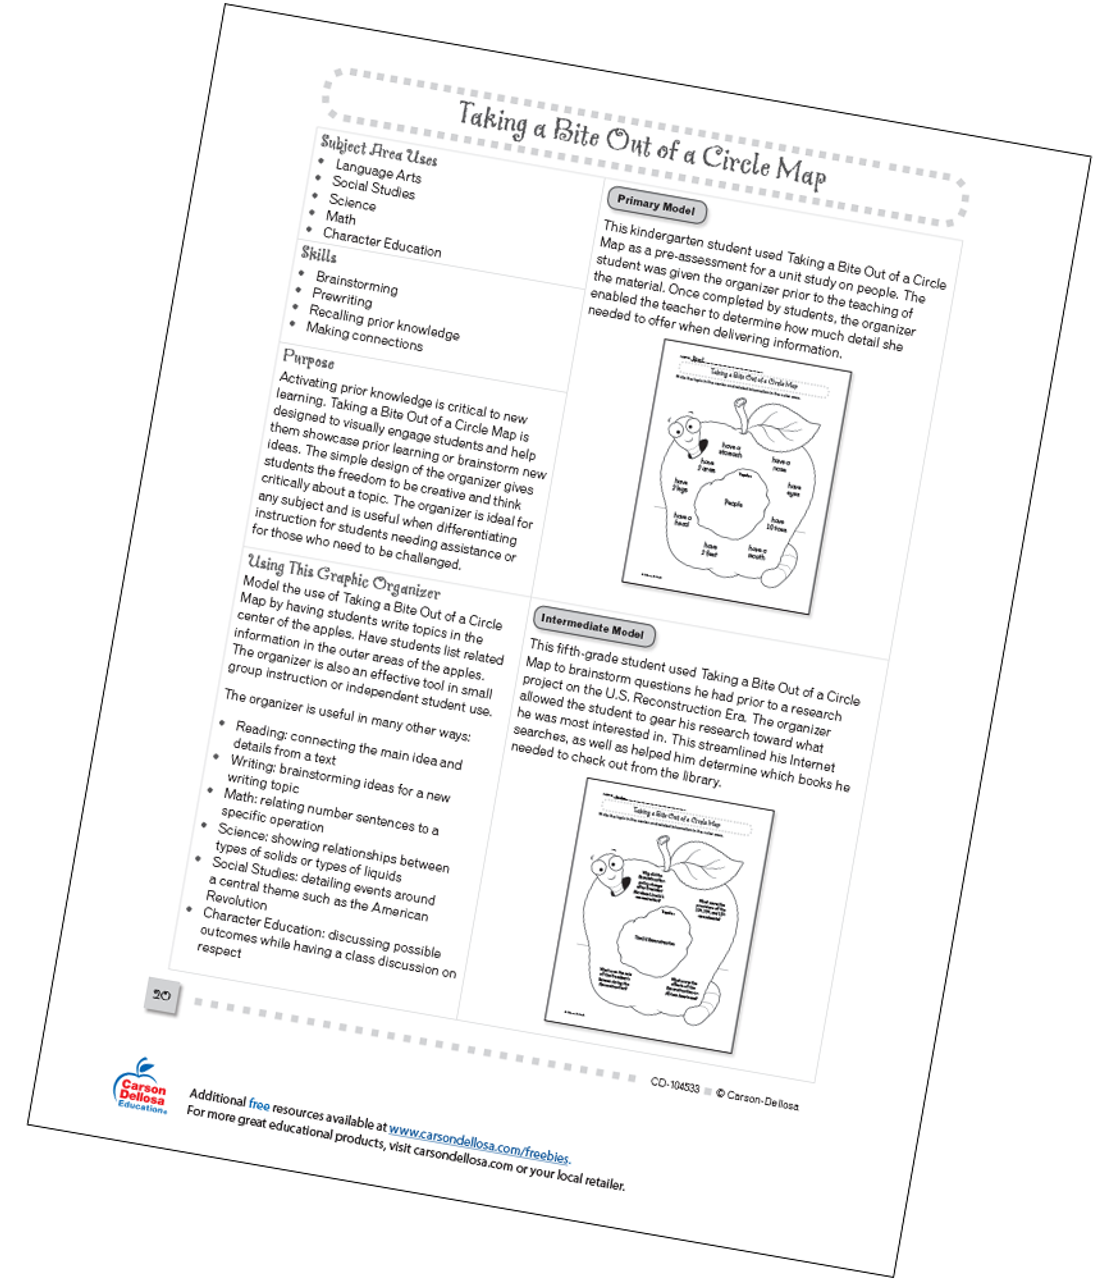 picture about Circle Map Printable titled Getting a Chunk Out of a Circle Map Cost-free Printable Carson